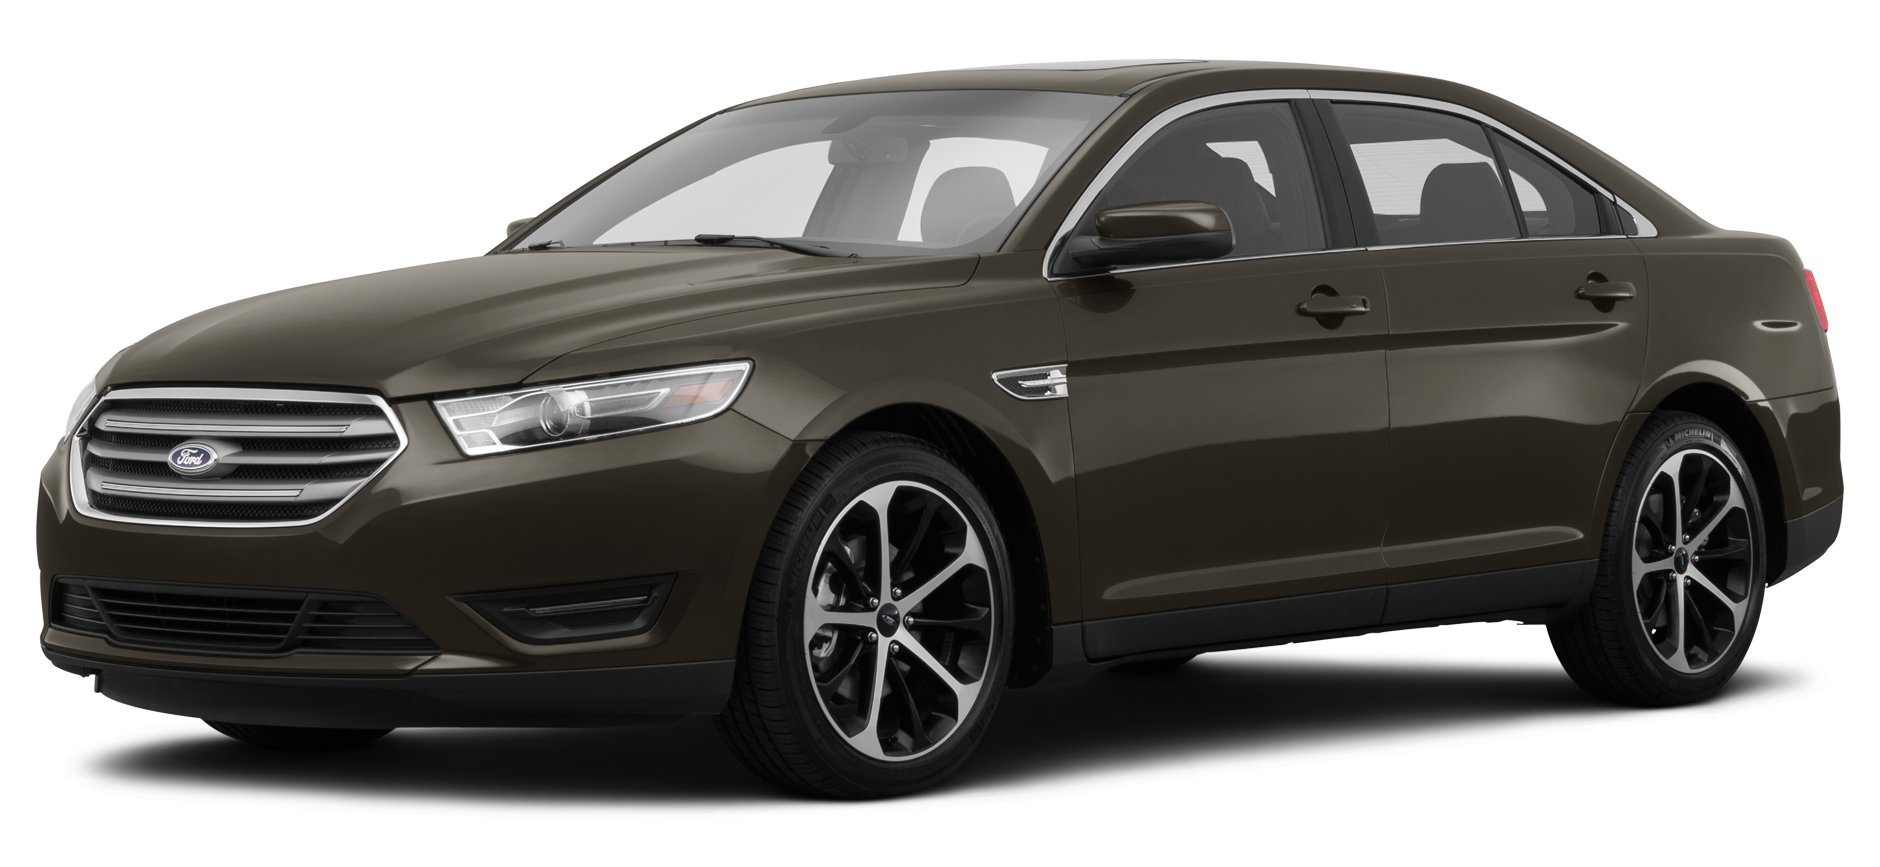 2015 Chevrolet Impala Reviews Images And Specs Vehicles Civic Obd2 Fuel Injector Wiring Schematic Ford Taurus Se 4 Door Sedan Front Wheel Drive